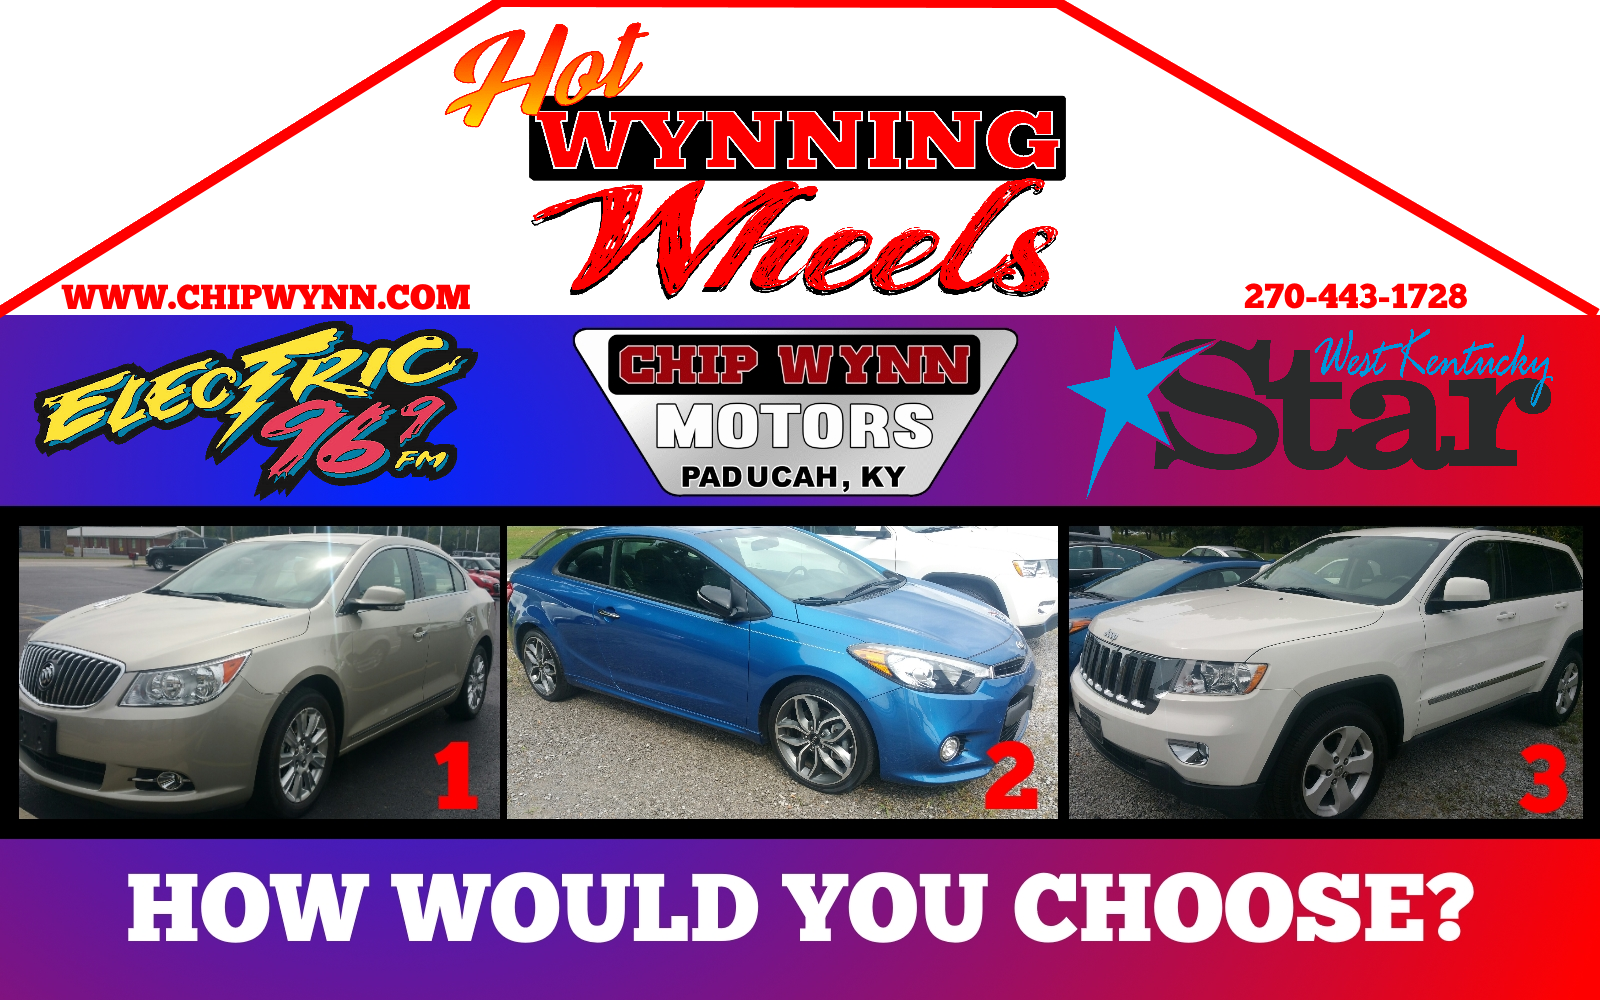 Chip Wynn's Hot Wynning Wheels - Car Giveaway